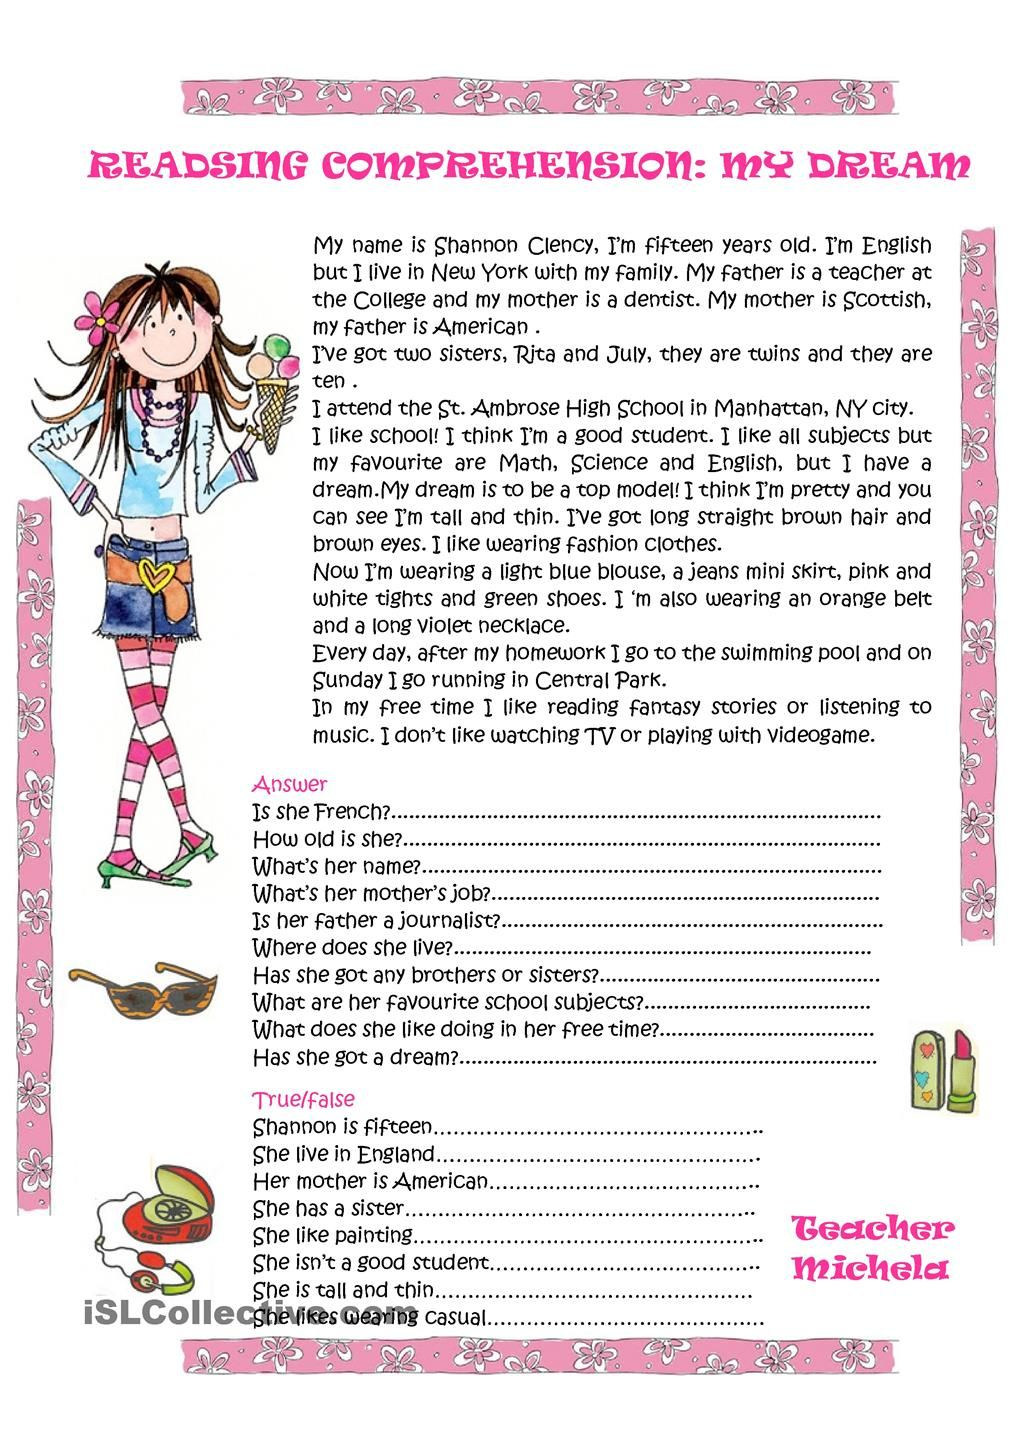 - Reading Comprehension: My Dream (With Images) Reading